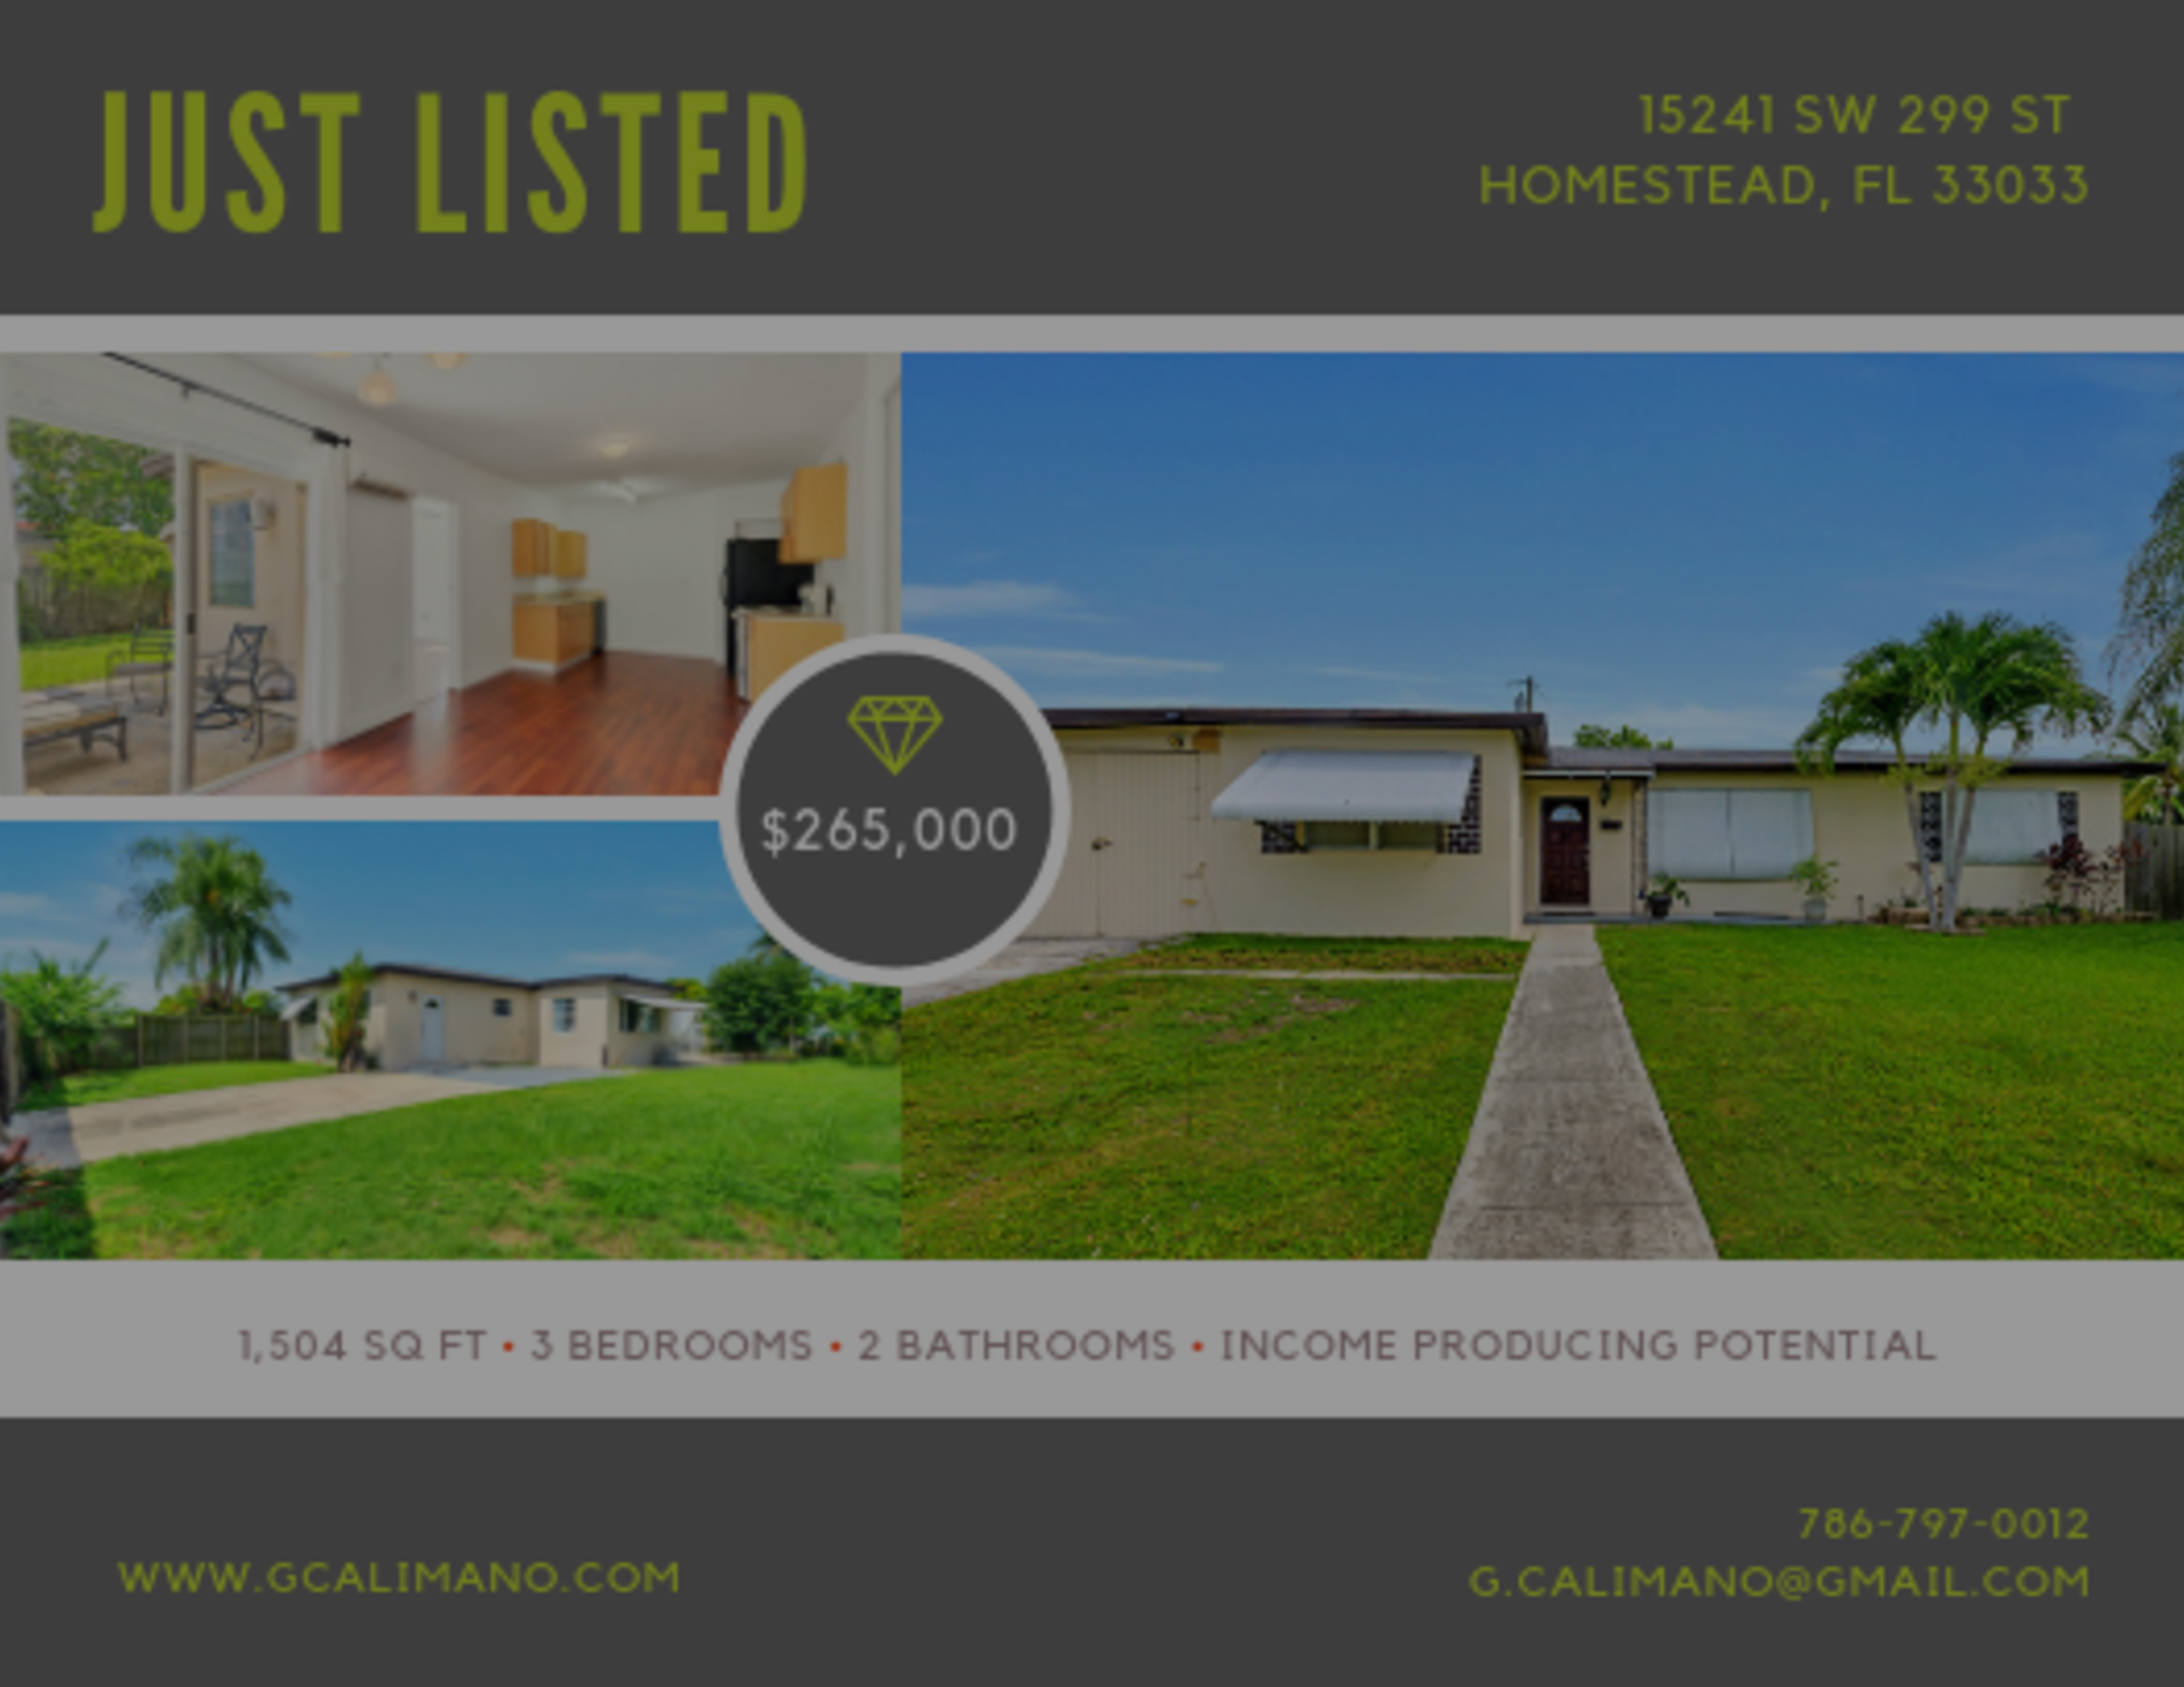 Corner lot home in Homestead with income potential!